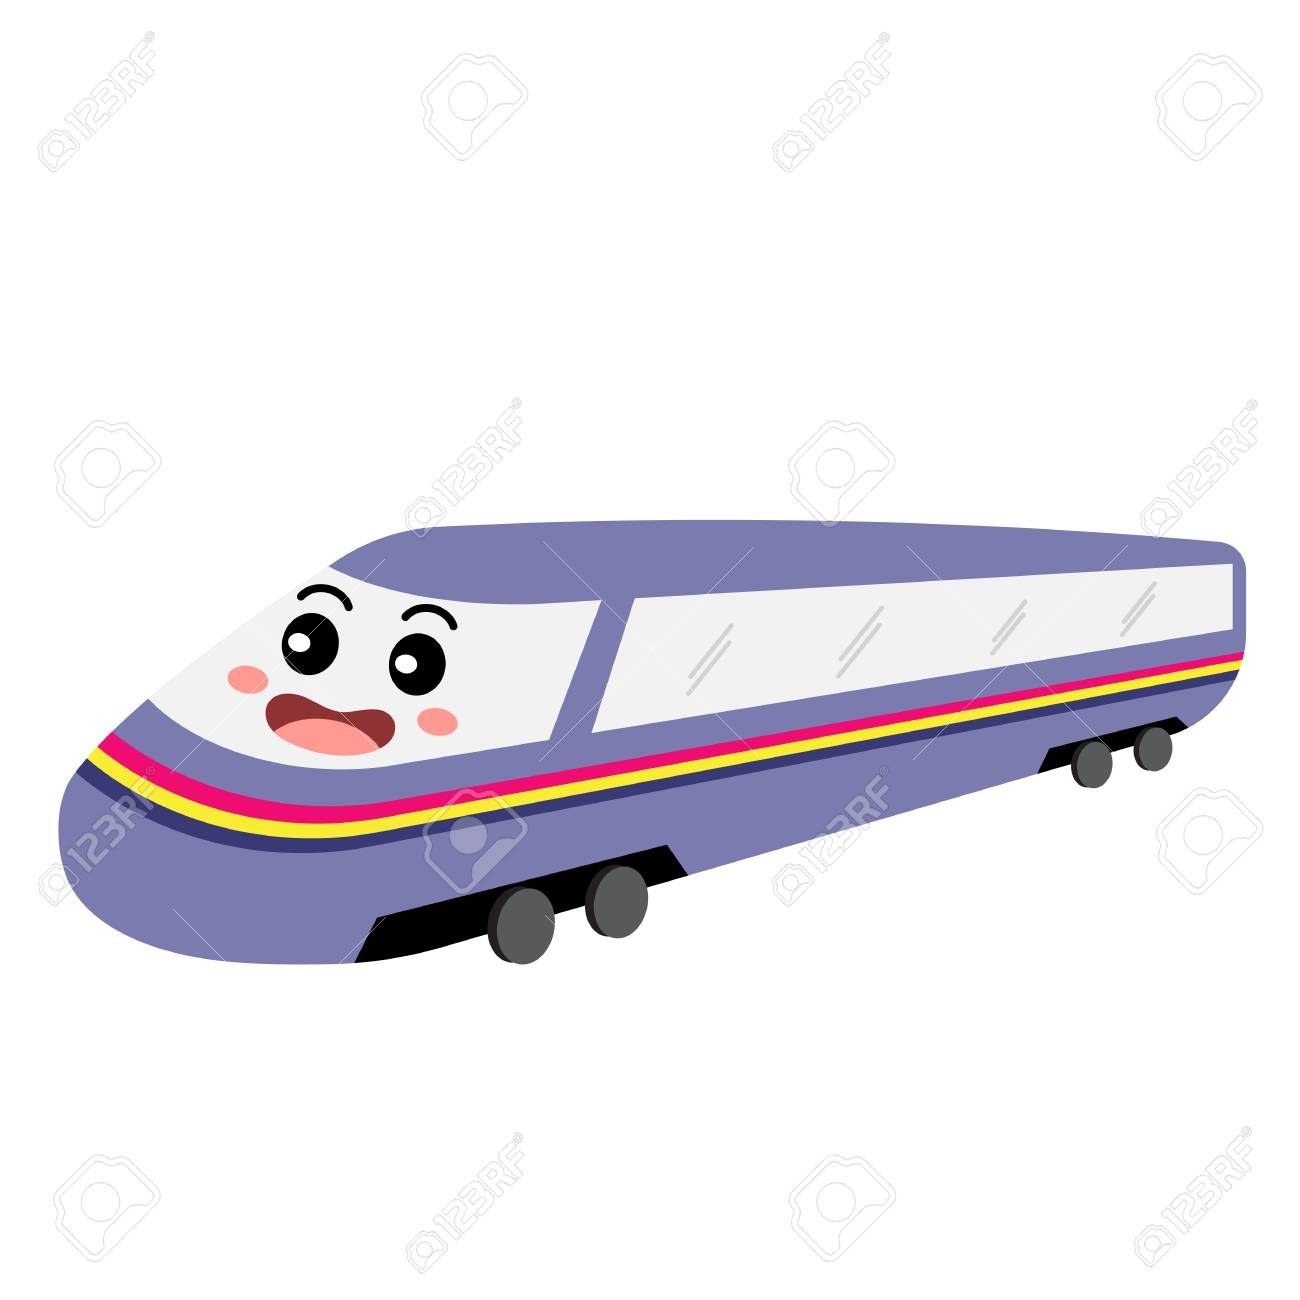 Bullet Train transportation cartoon character perspective view